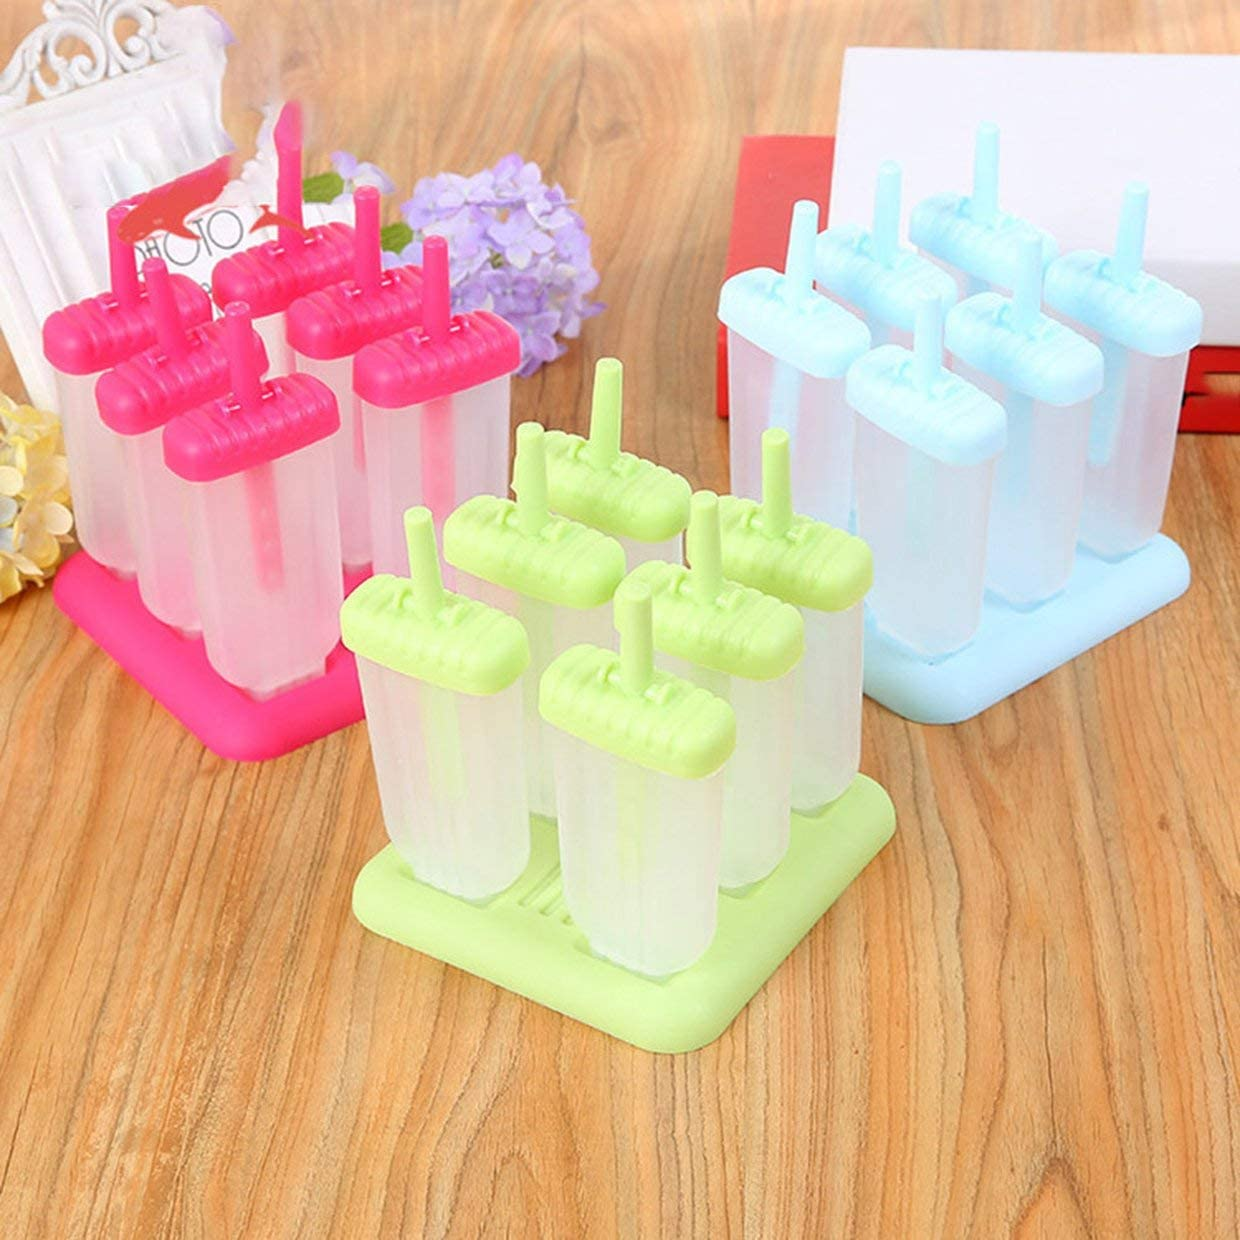 Fashion Popsicles Mold Plastic Frozen Ice Cream Mold Popsicle Maker Lolly Mould Tray Pan Maker Tool Cooking Tools